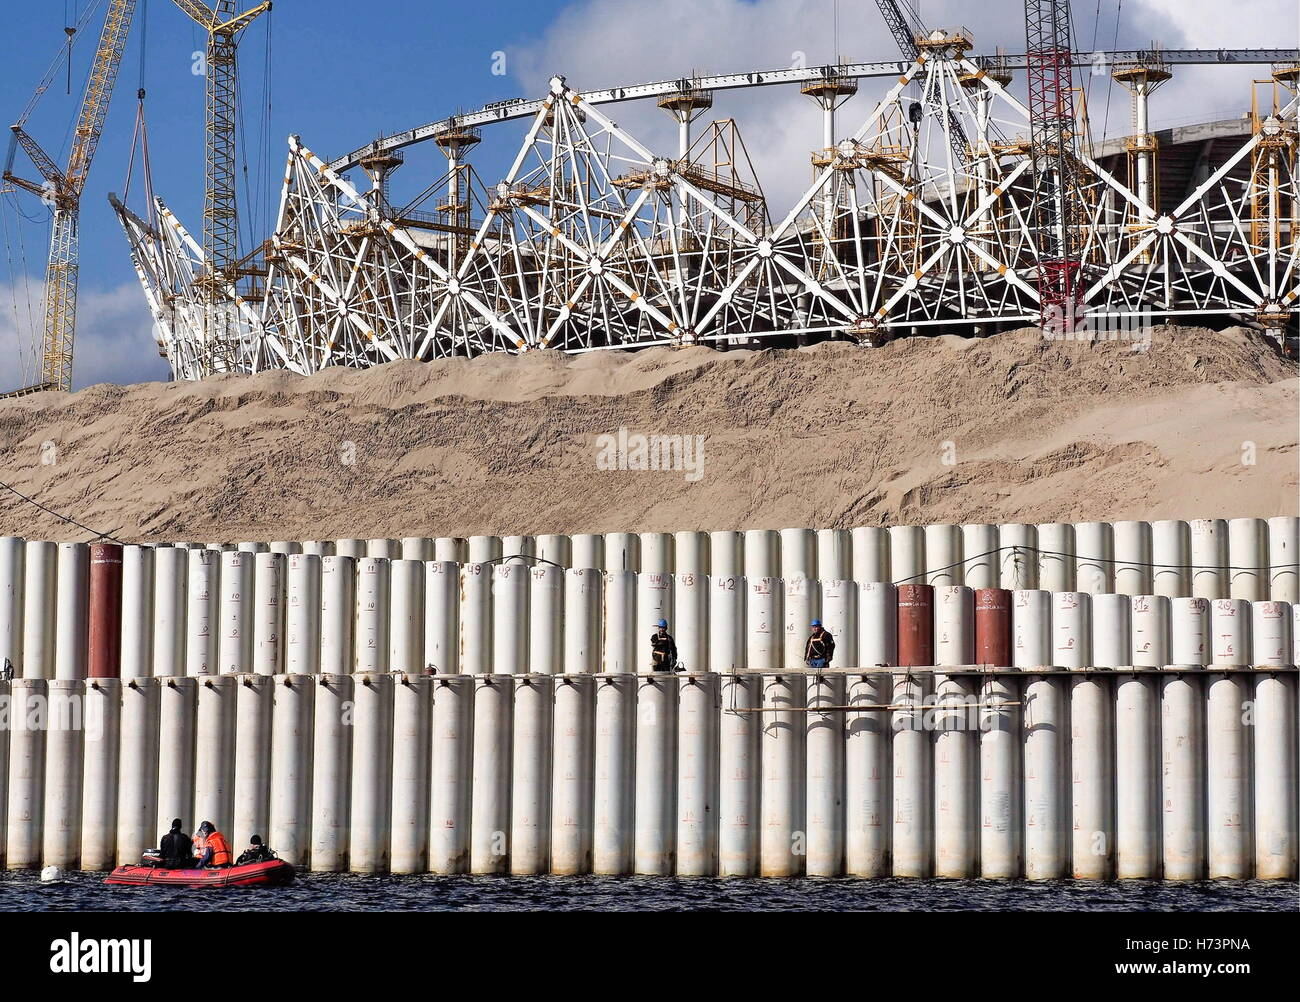 Volgograd, Russia. 2nd Nov, 2016. The construction site of a belt road along the Volga River. In addition to the - Stock Image